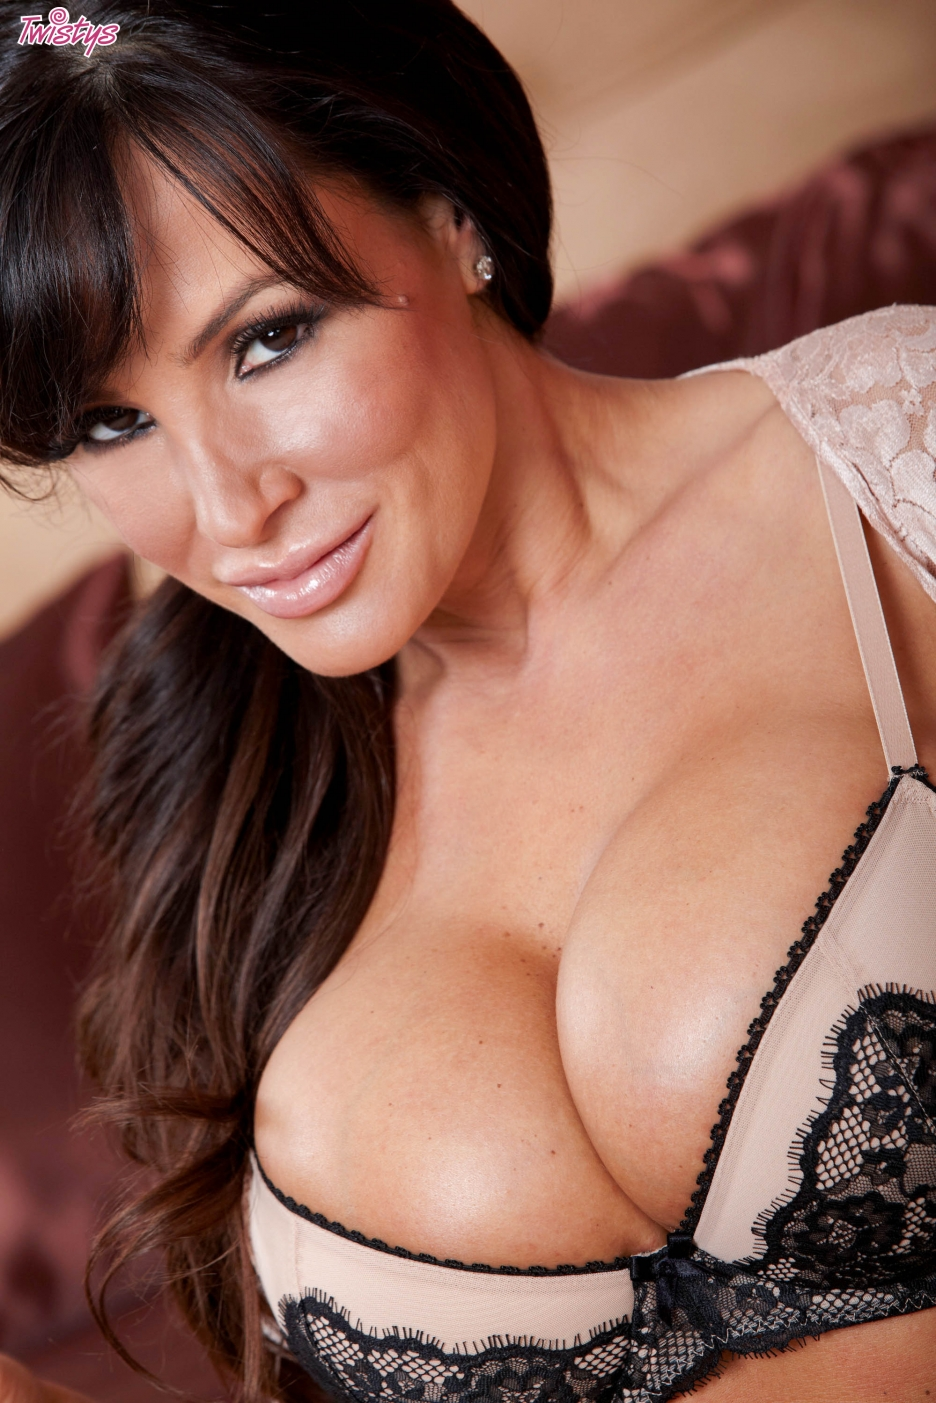 936full-lisa-ann.jpg